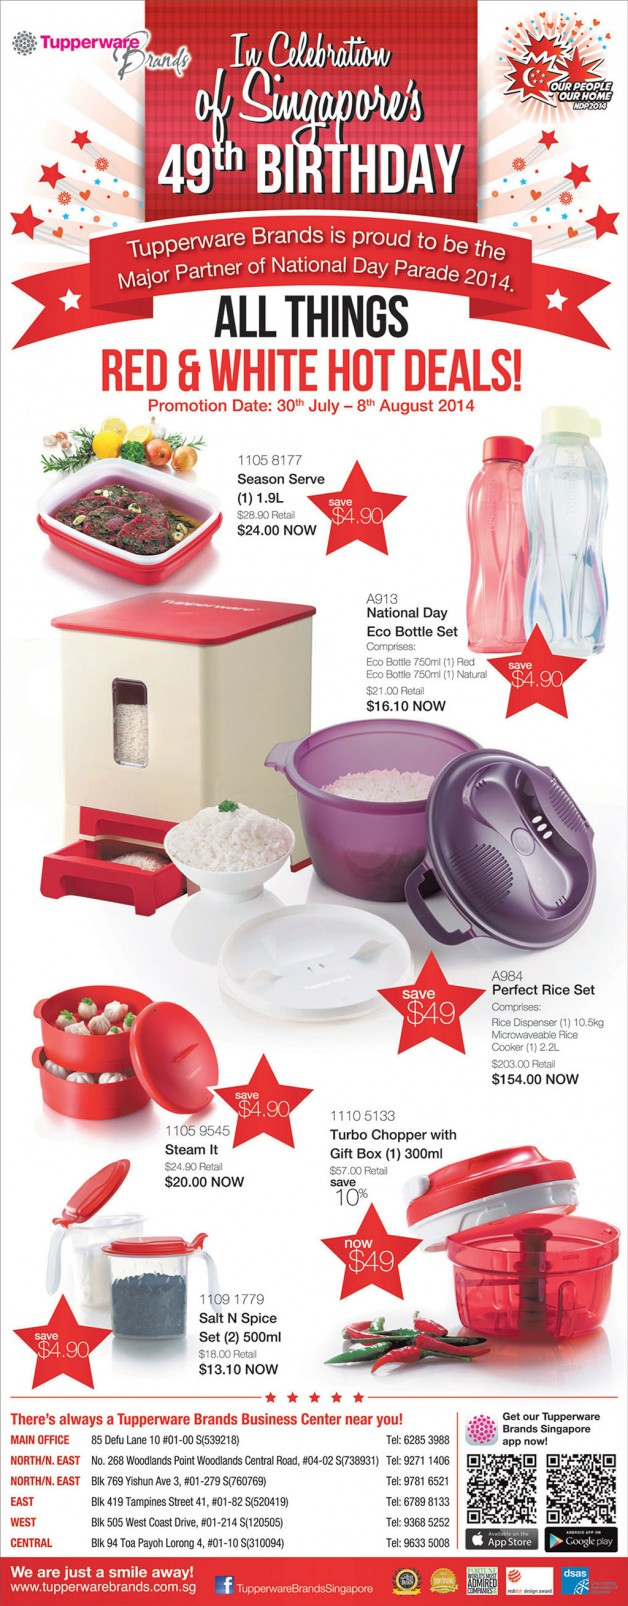 tupperware-ndp-2014-offers-628x1606